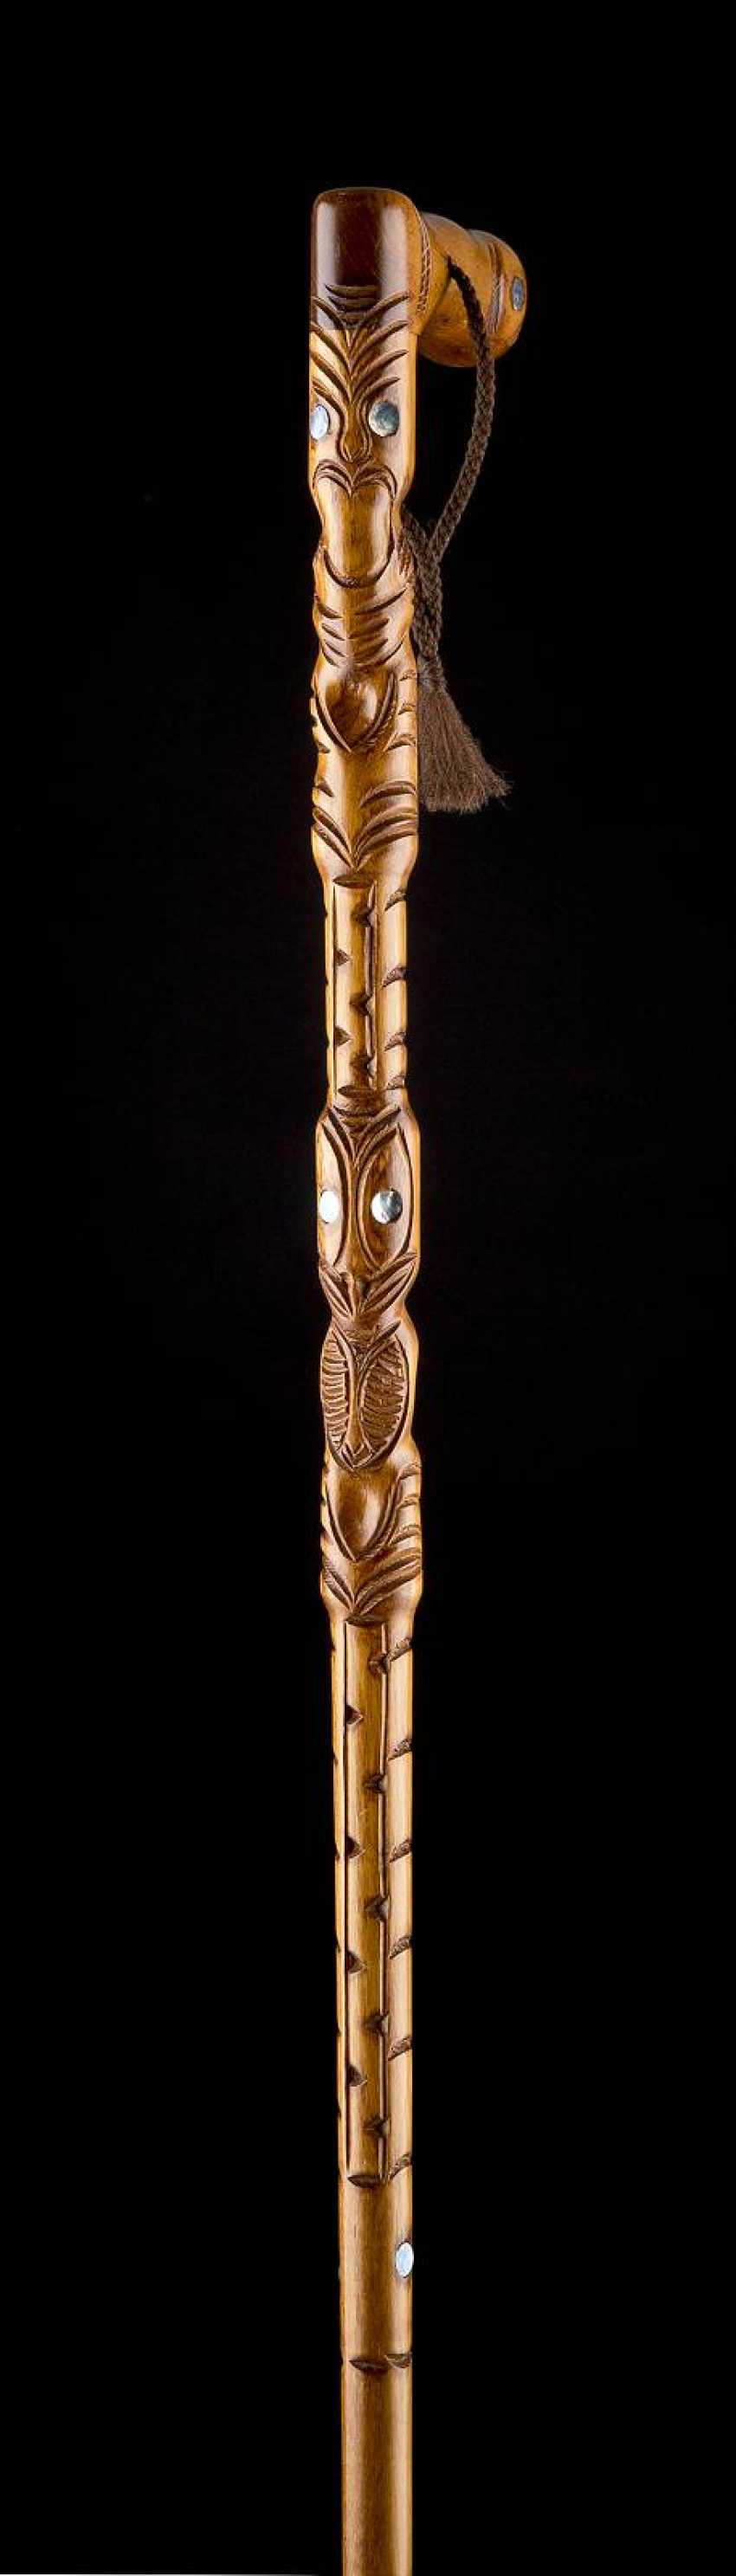 WALKING STICK WITH MOTHER OF PEARL INLAYS - photo 1